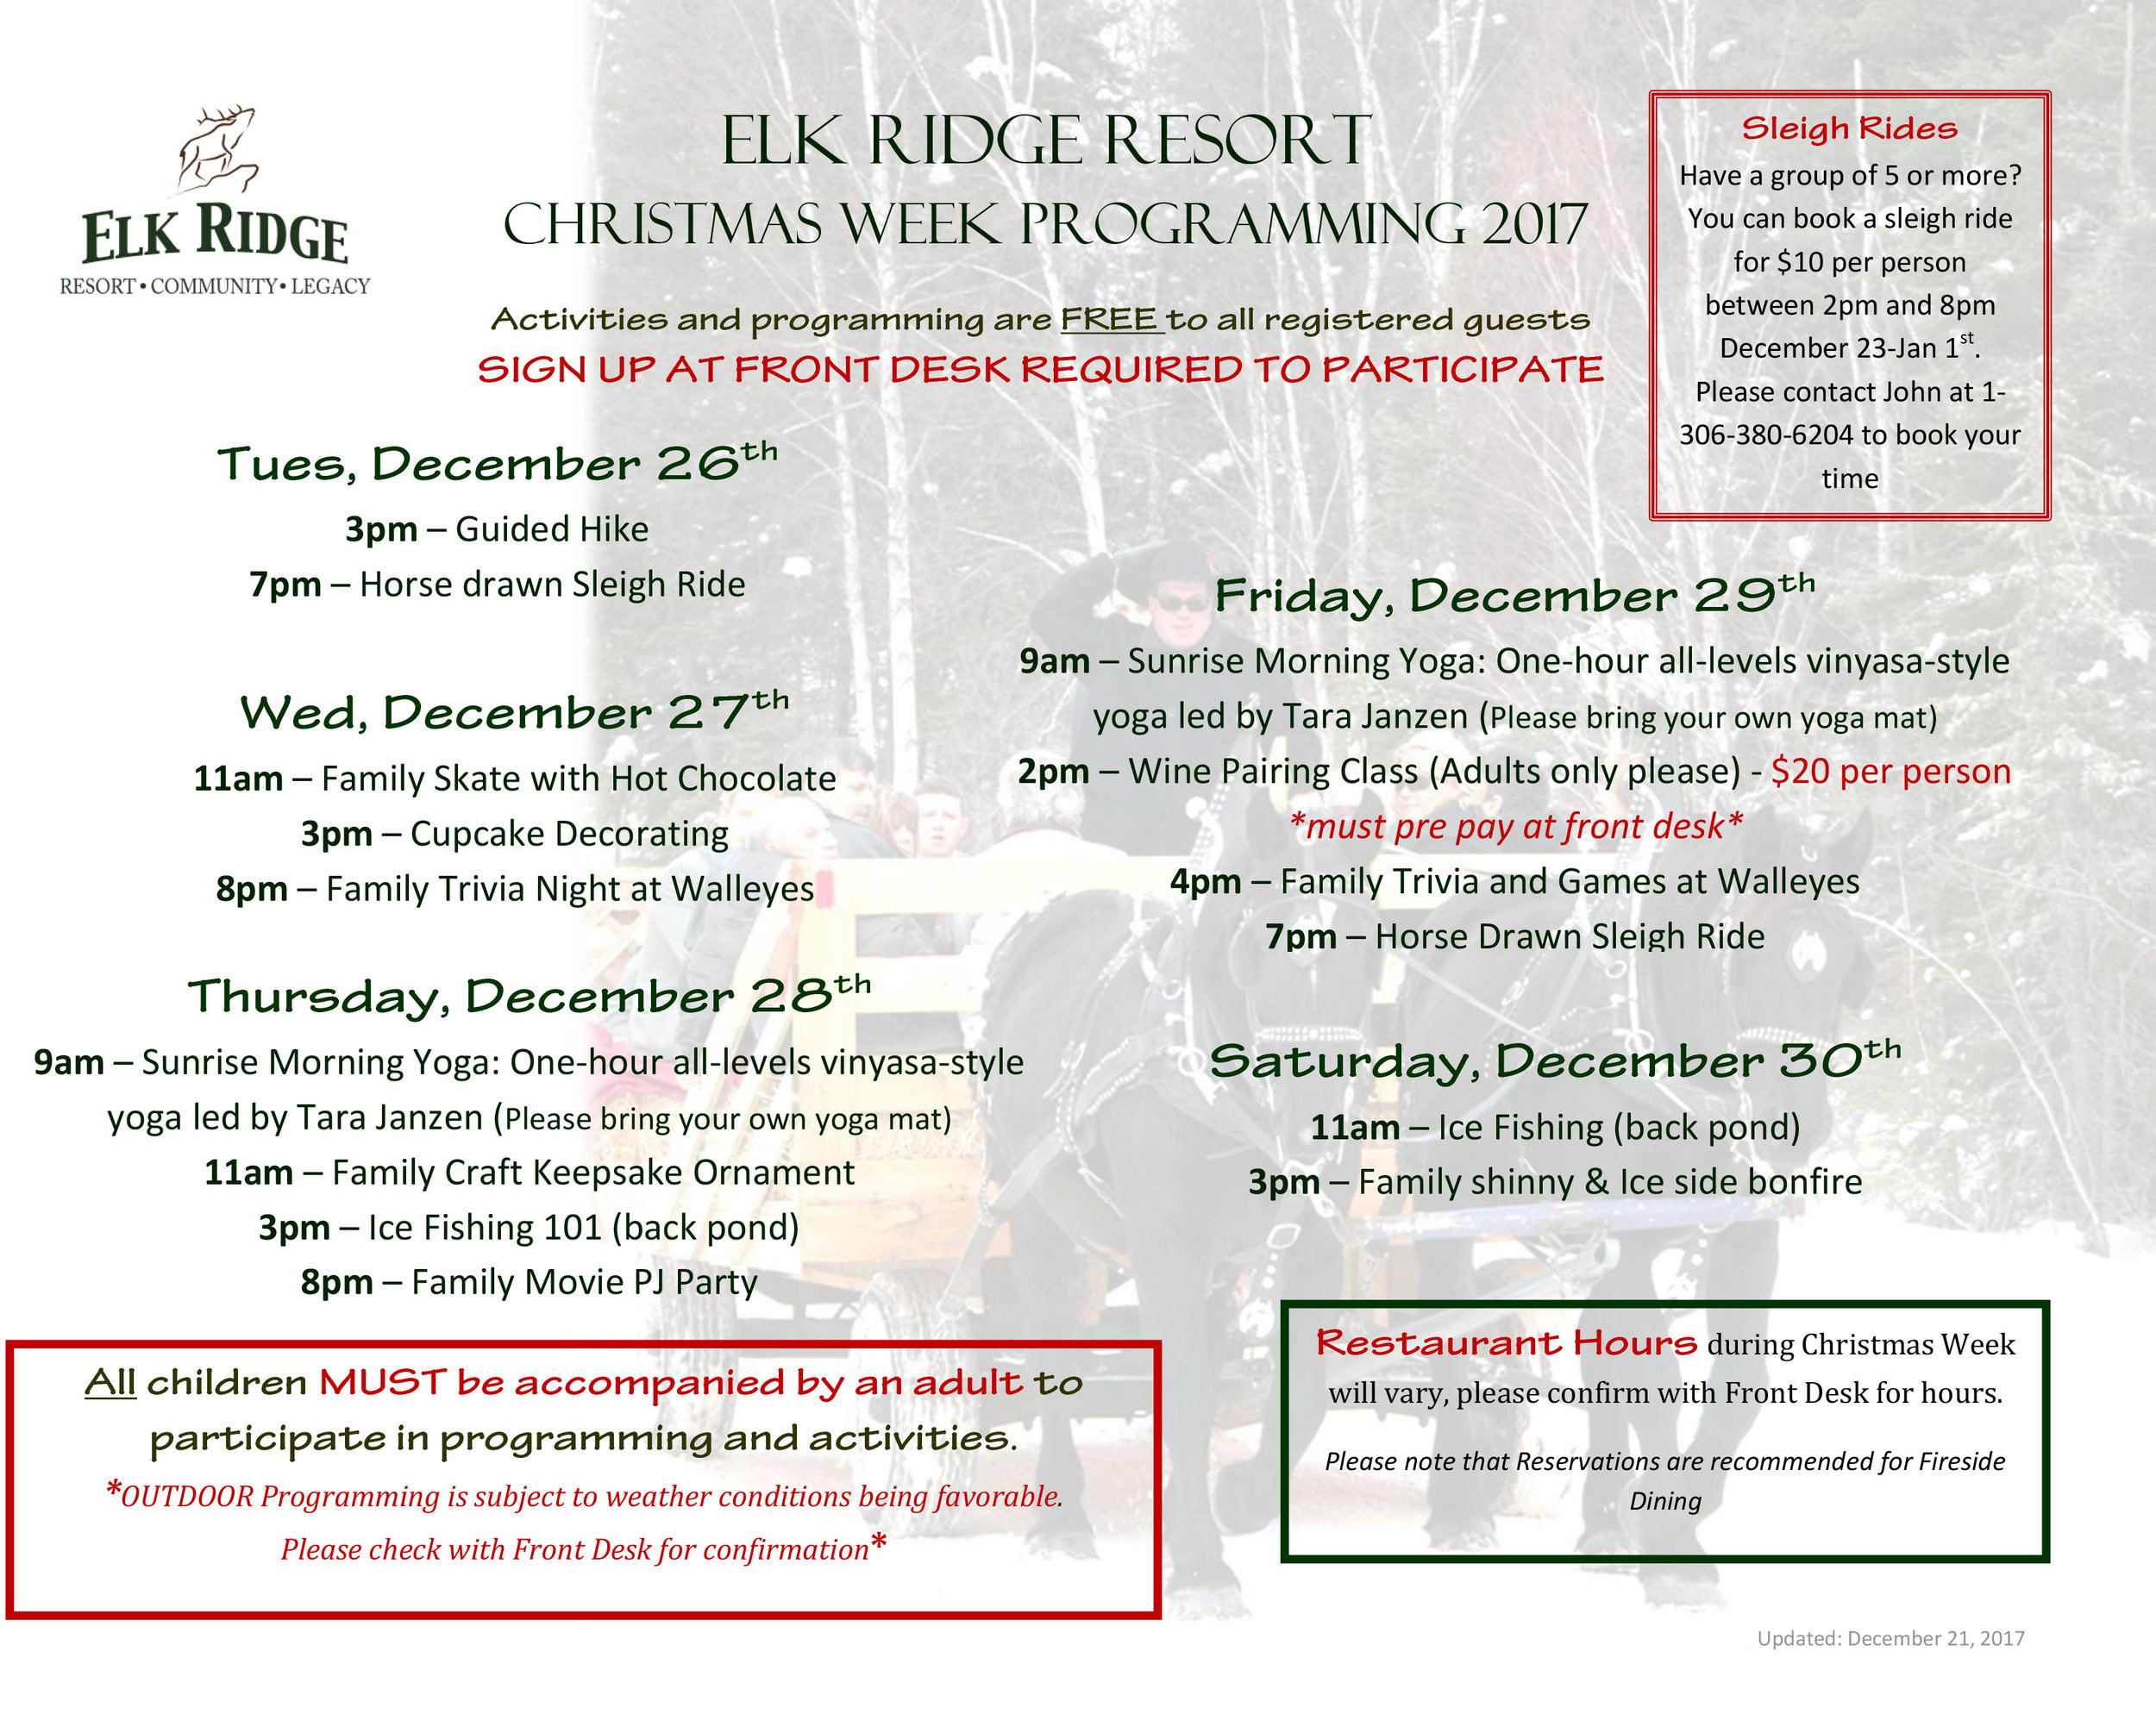 Christmas-Week-Activities-For-Guests-v.2-1.jpg